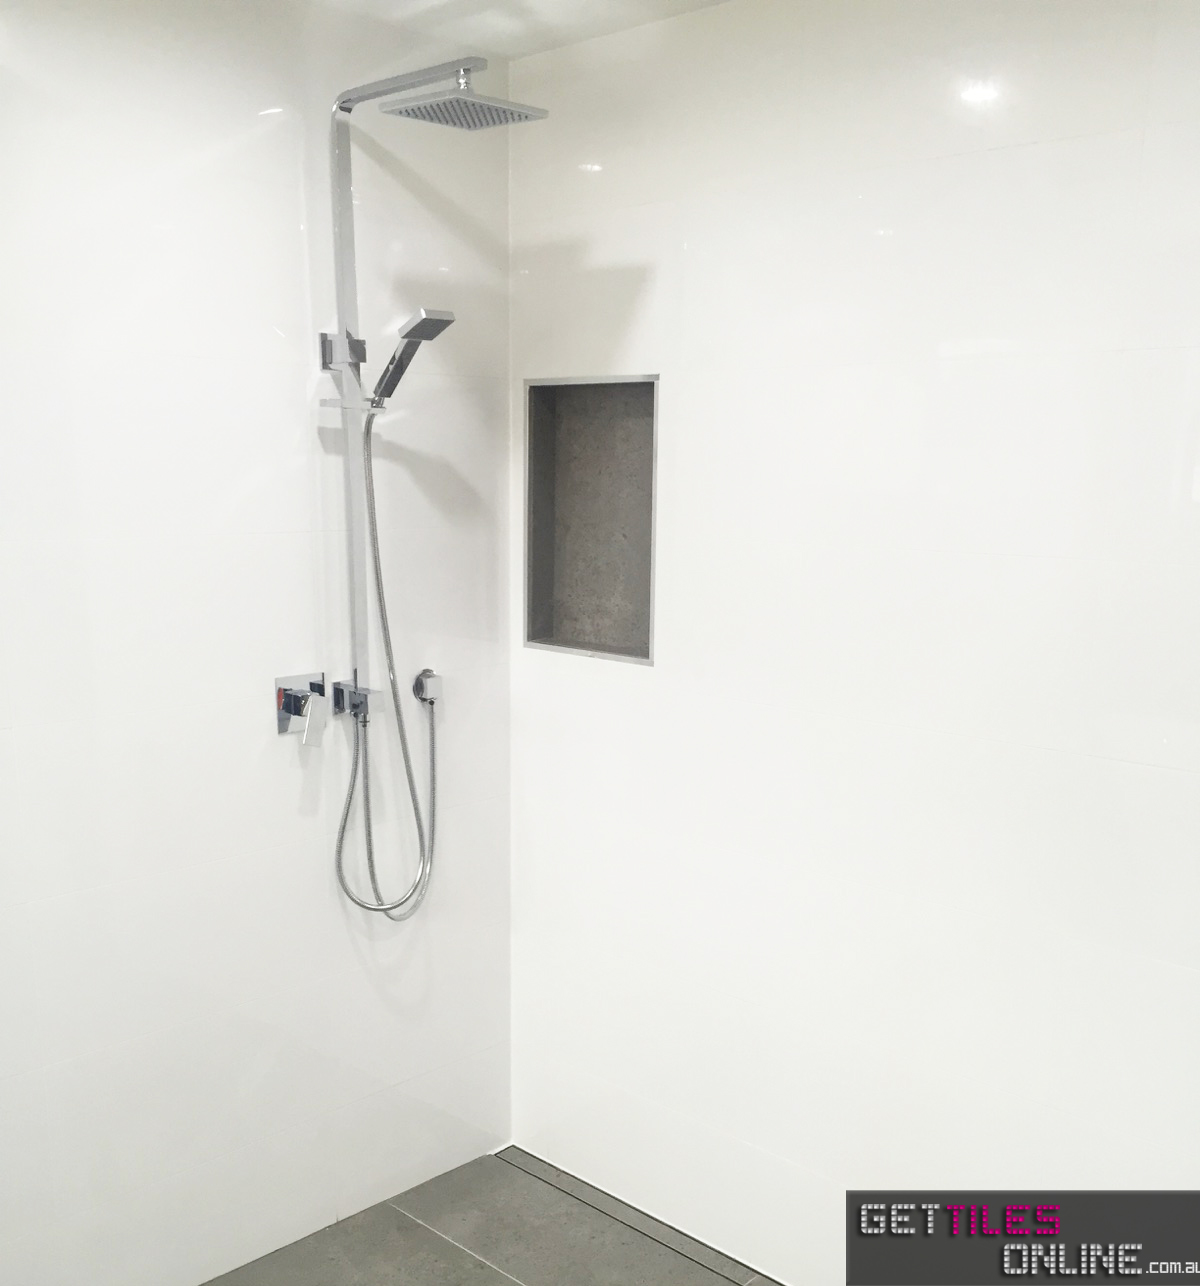 Cheapest 300x600 White Gloss Tile for Wall - $10/m2 | Get Tiles Online